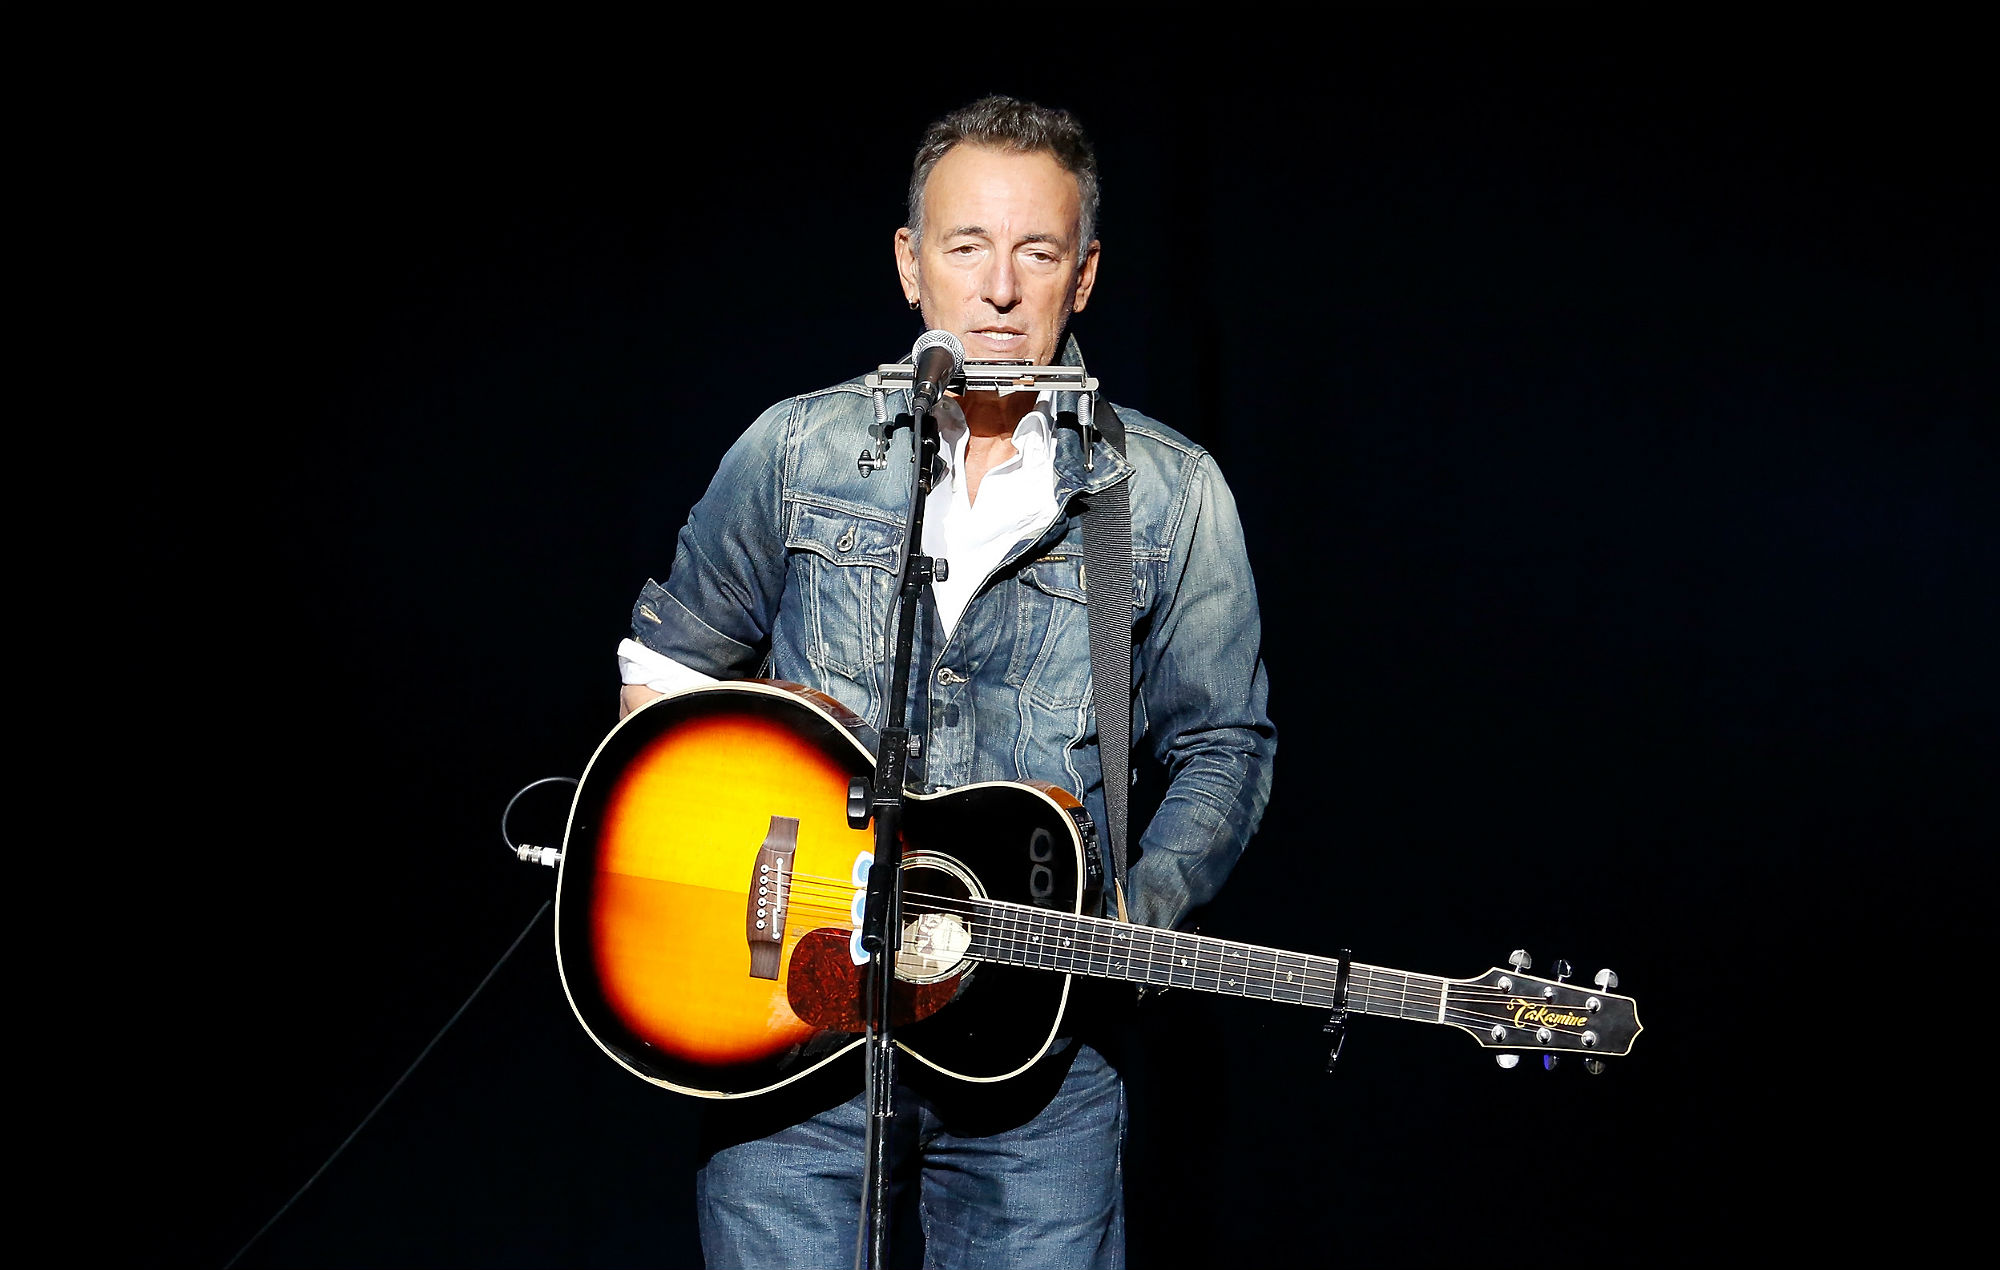 Bruce Springsteen Tour 2020 Usa Bruce Springsteen confirms new E Street Band album and tour for